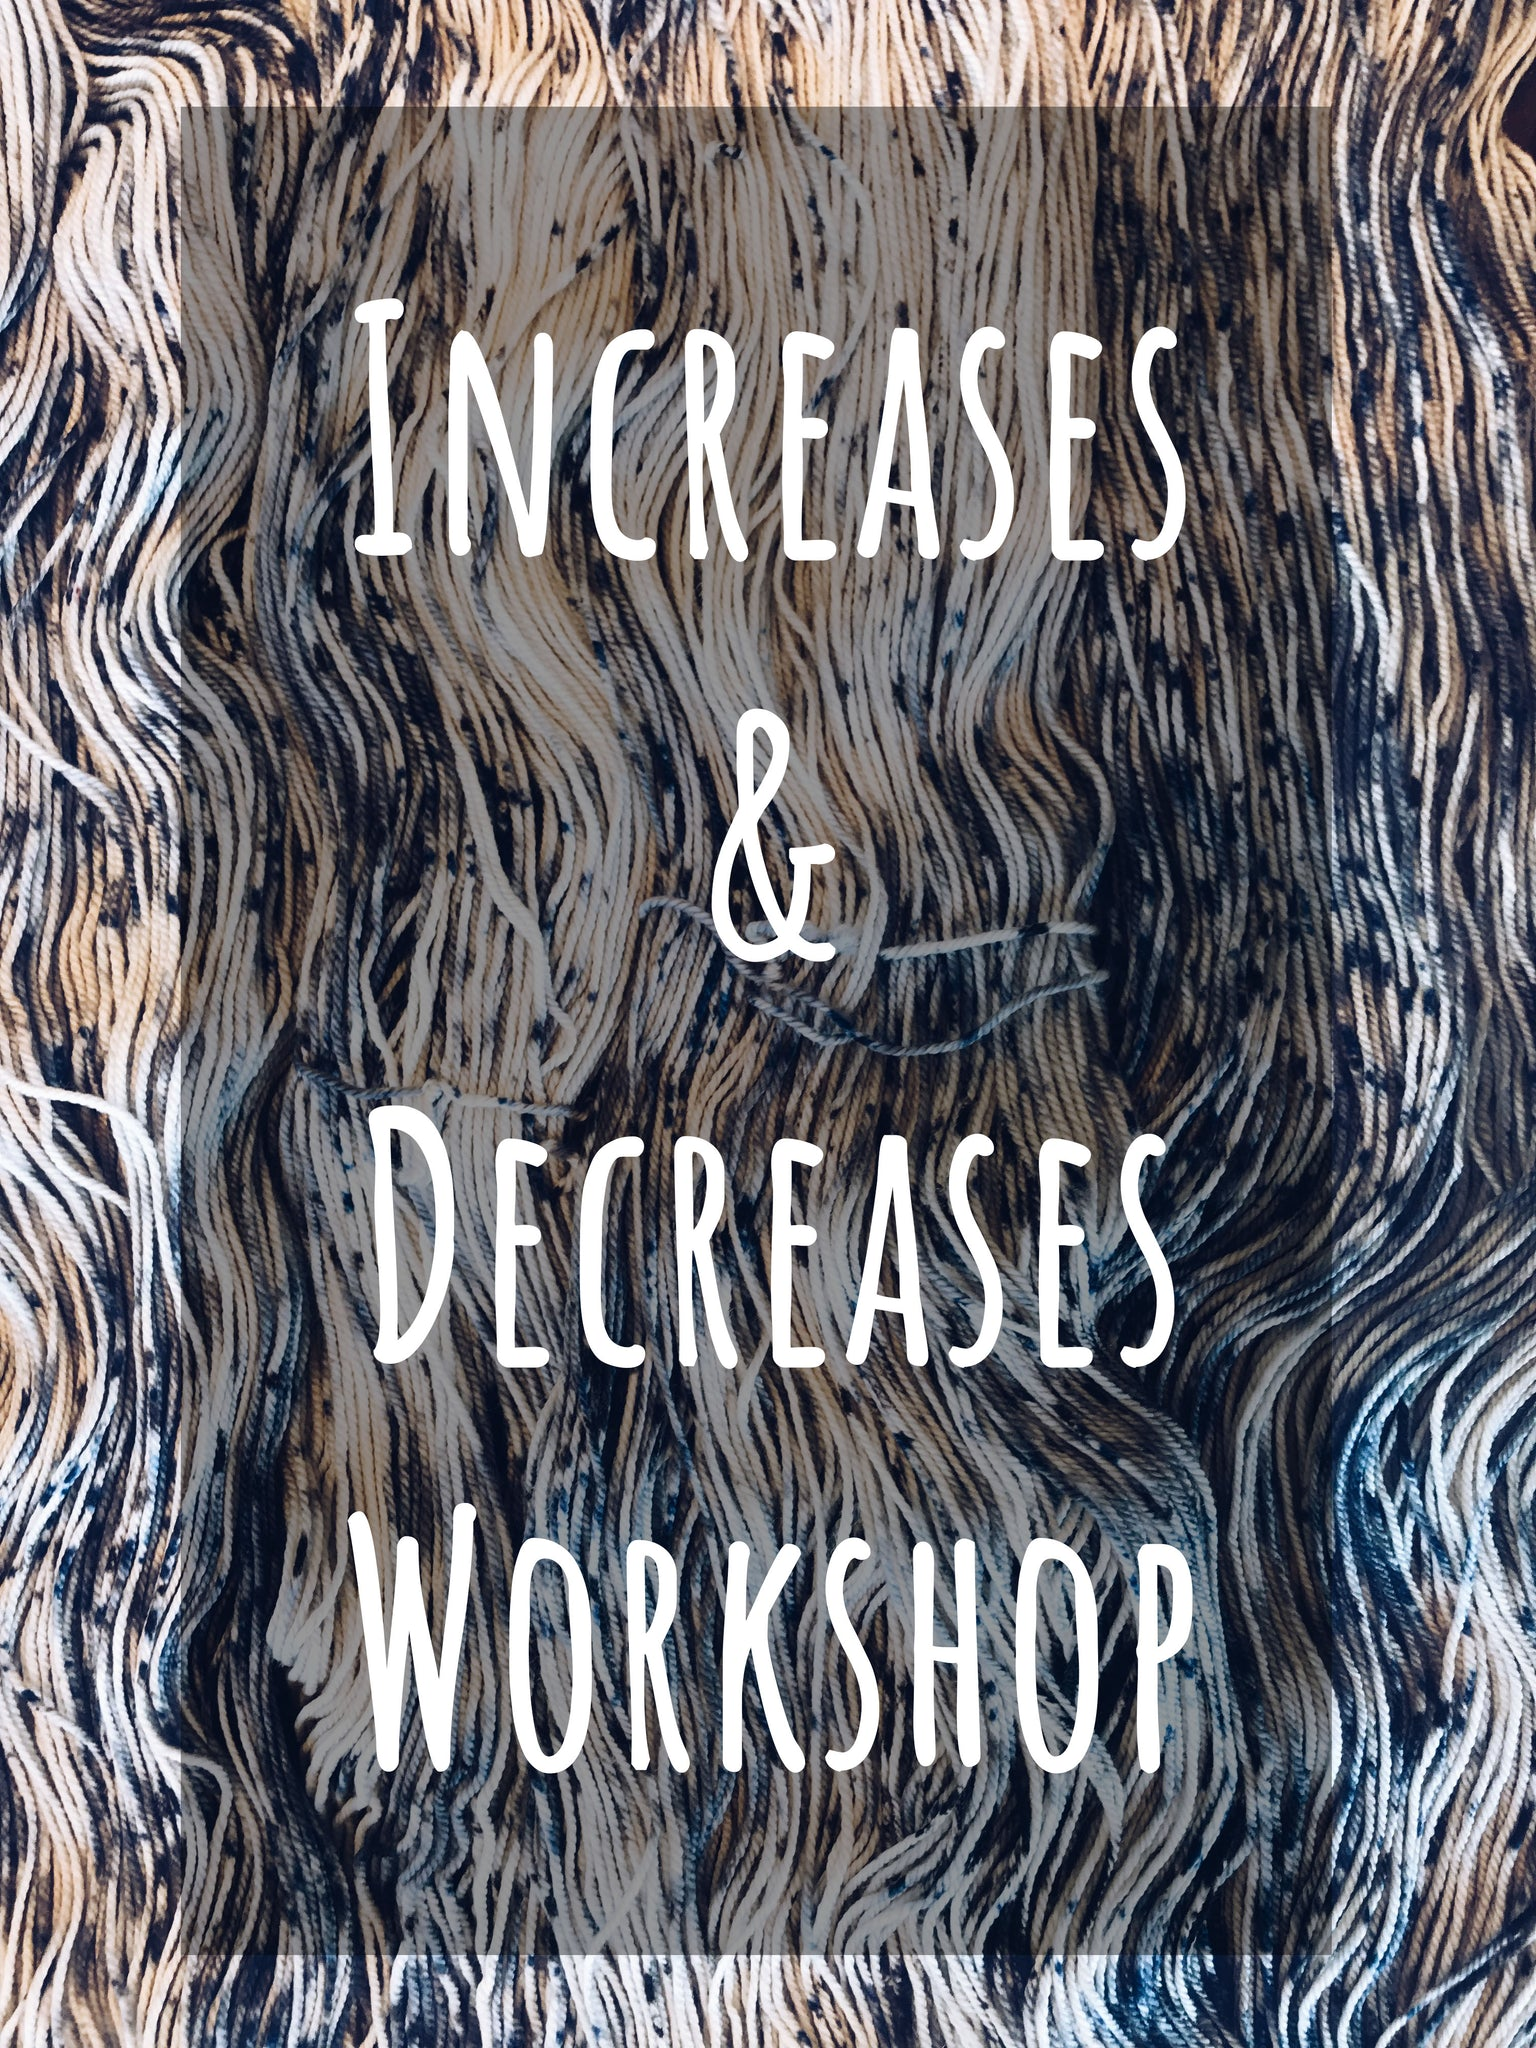 Increases & Decreases Workshop with Marie